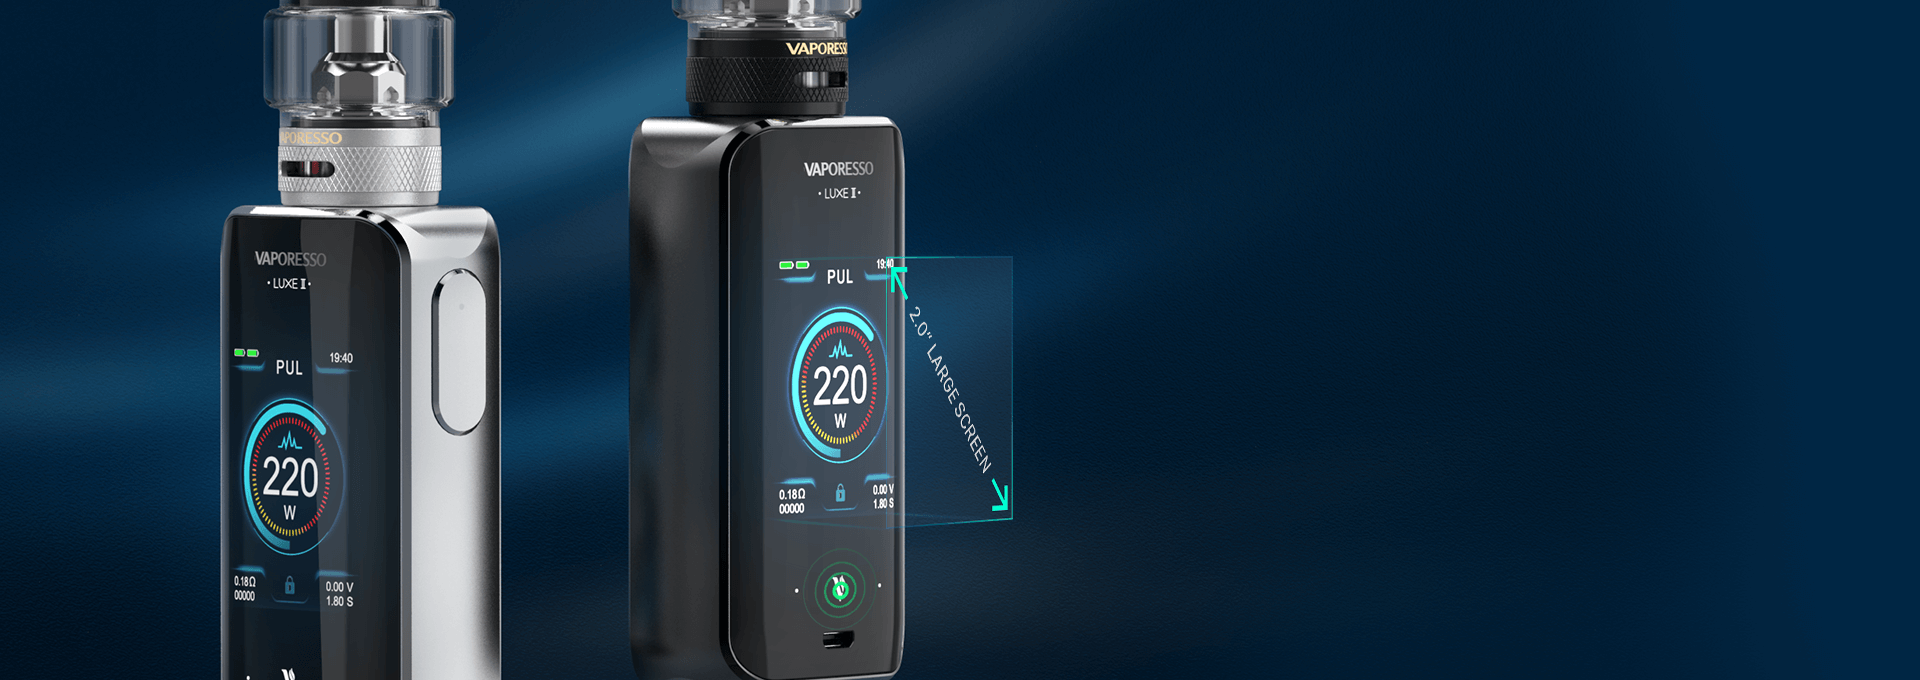 https://www.vaporesso.com/hubfs/imgs/product_img/luxe_2/pc/pc-hl-ui.png